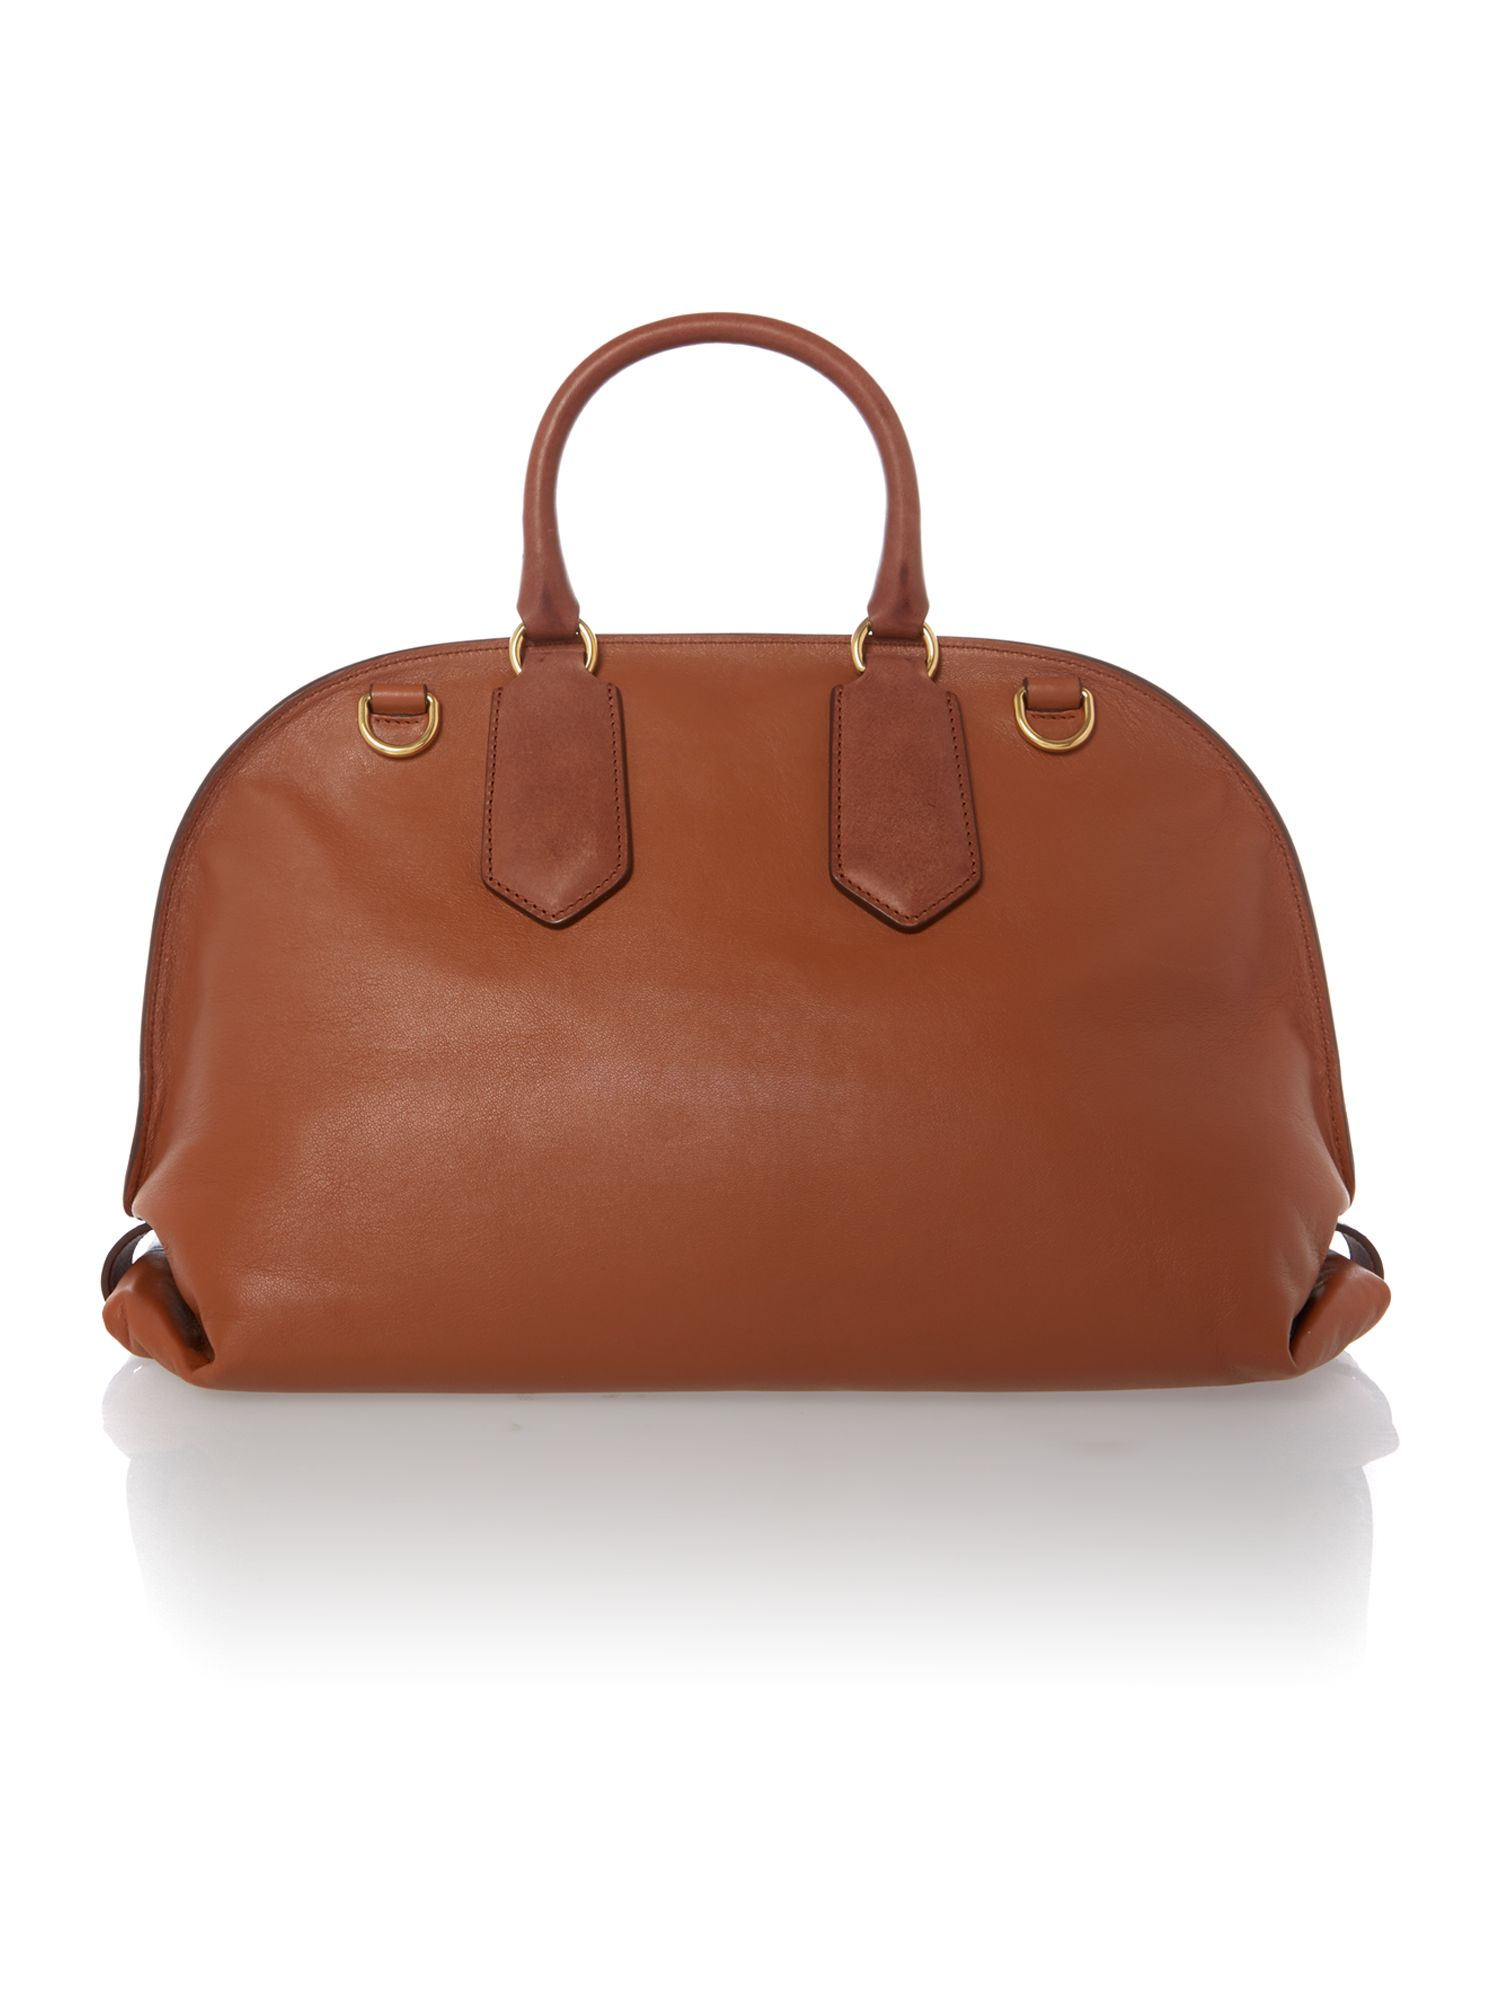 Gregoire tan tote bag